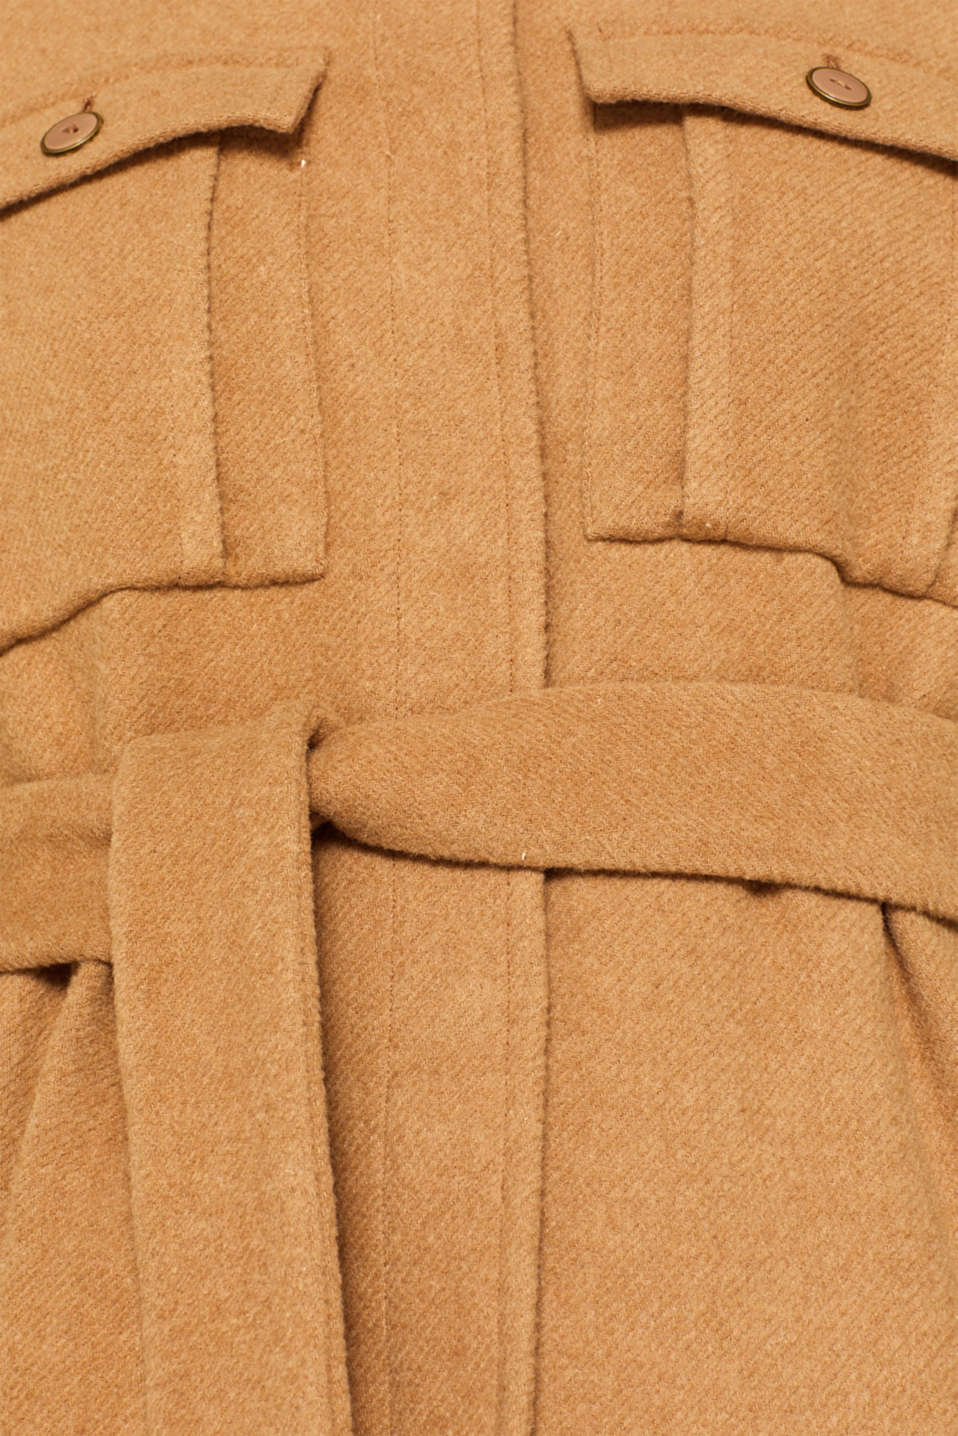 Jackets outdoor woven, CAMEL, detail image number 4